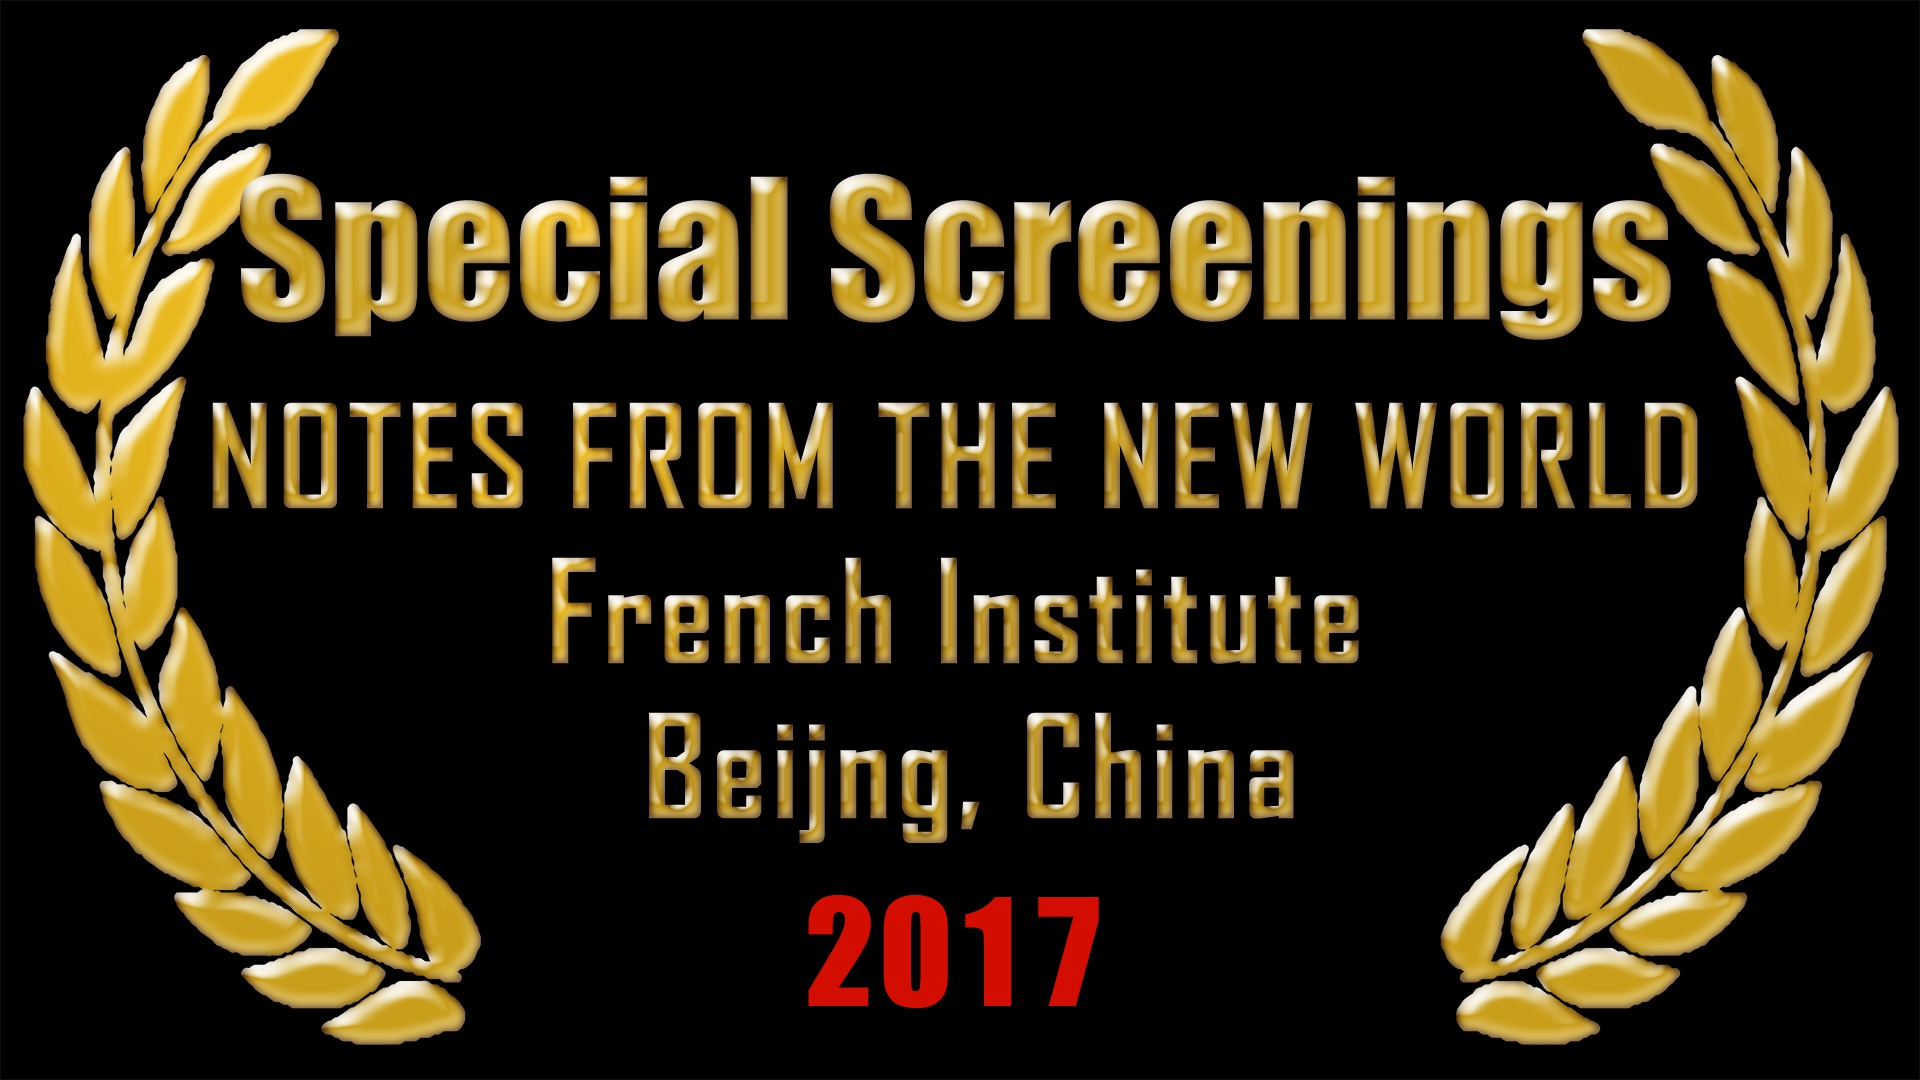 Special Screenings - French Institute, Beijing, China 2017